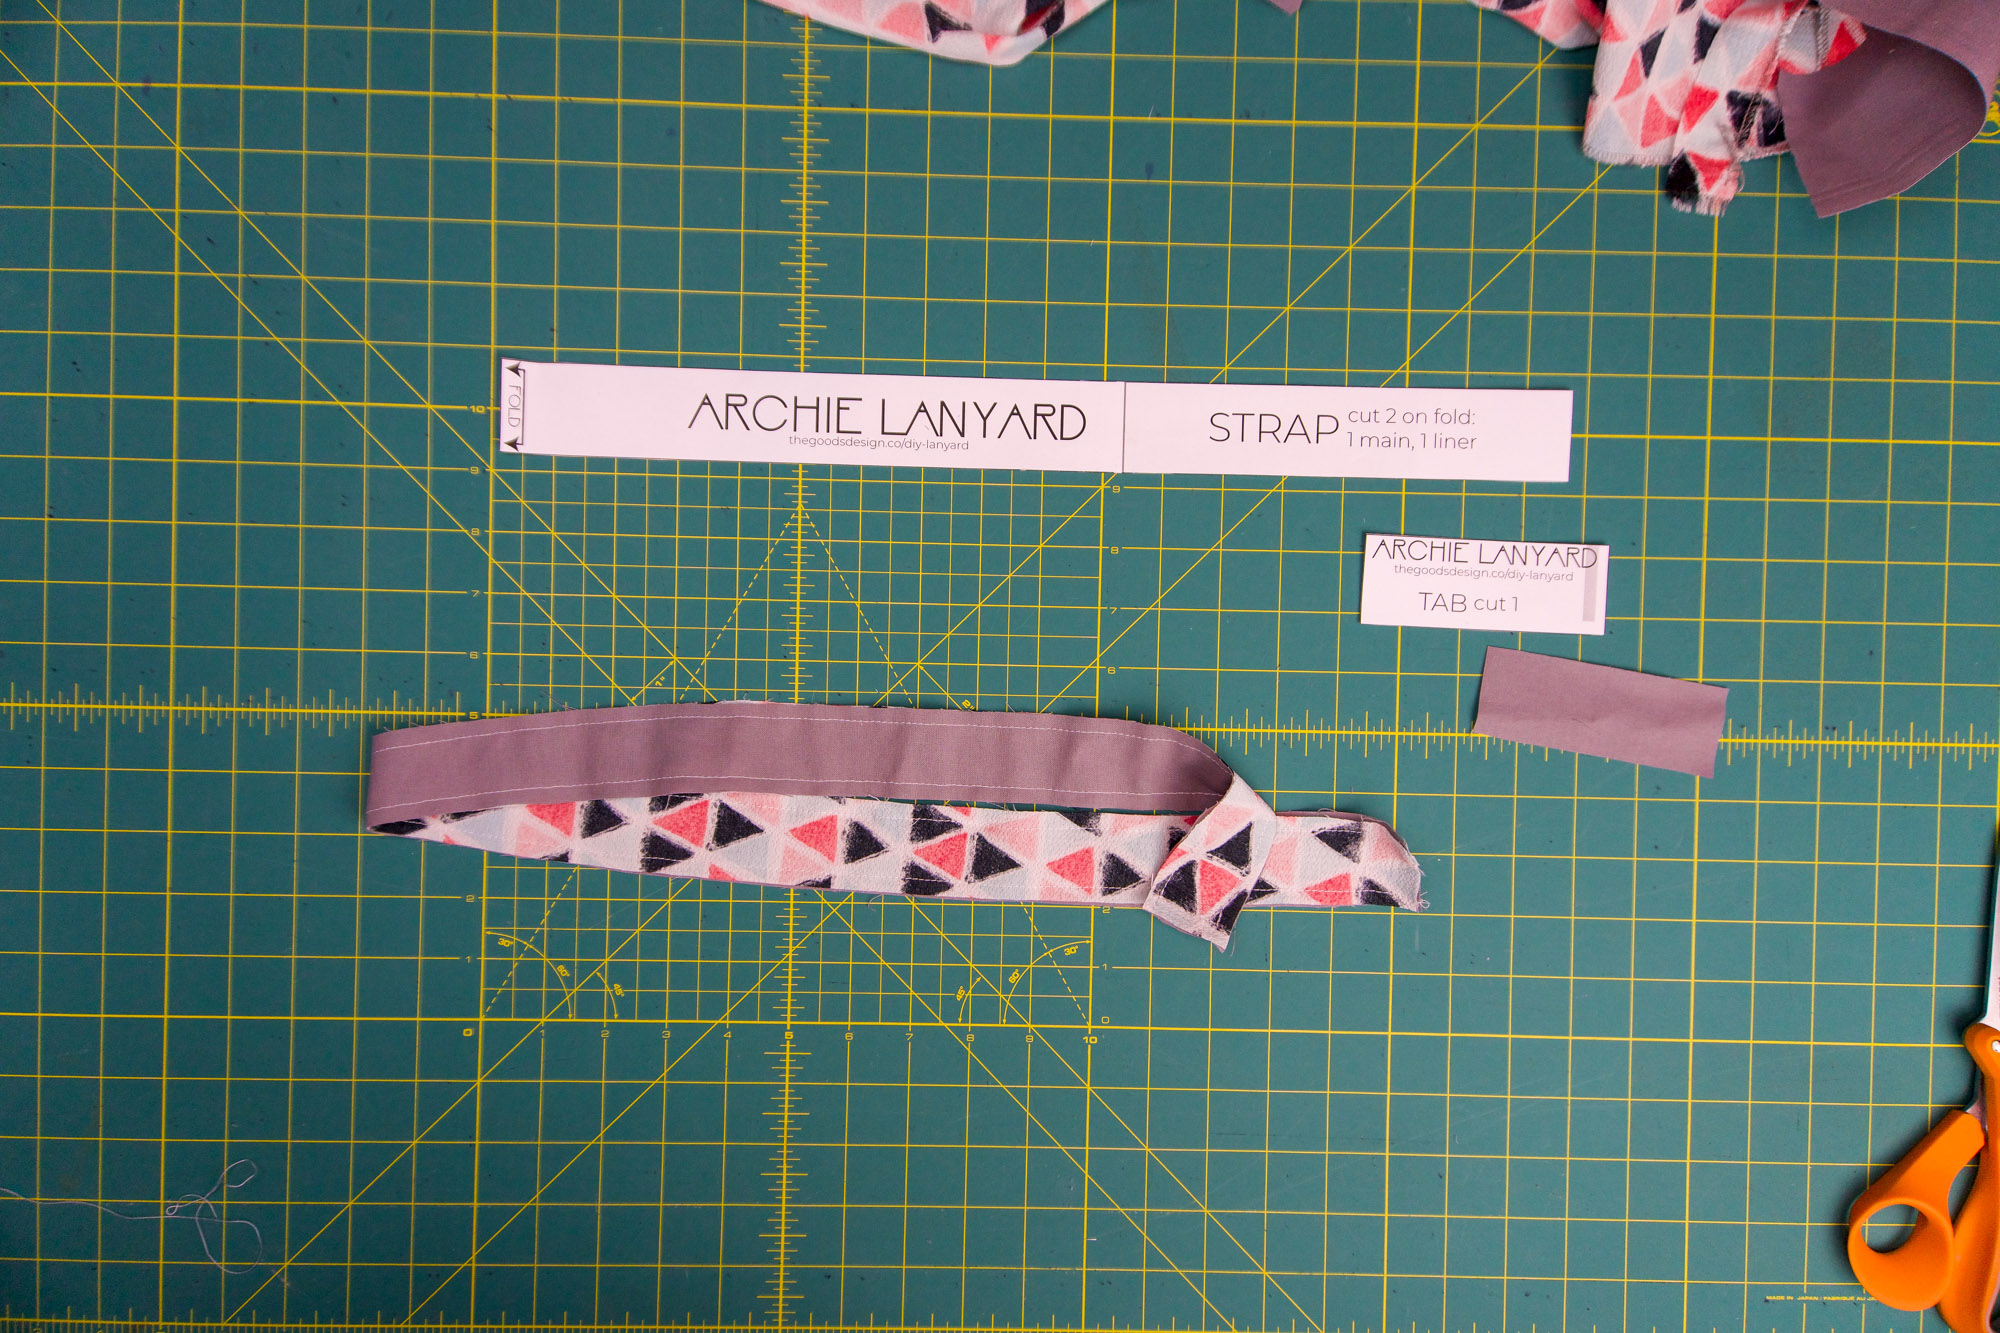 Strap sewn together on both long ends